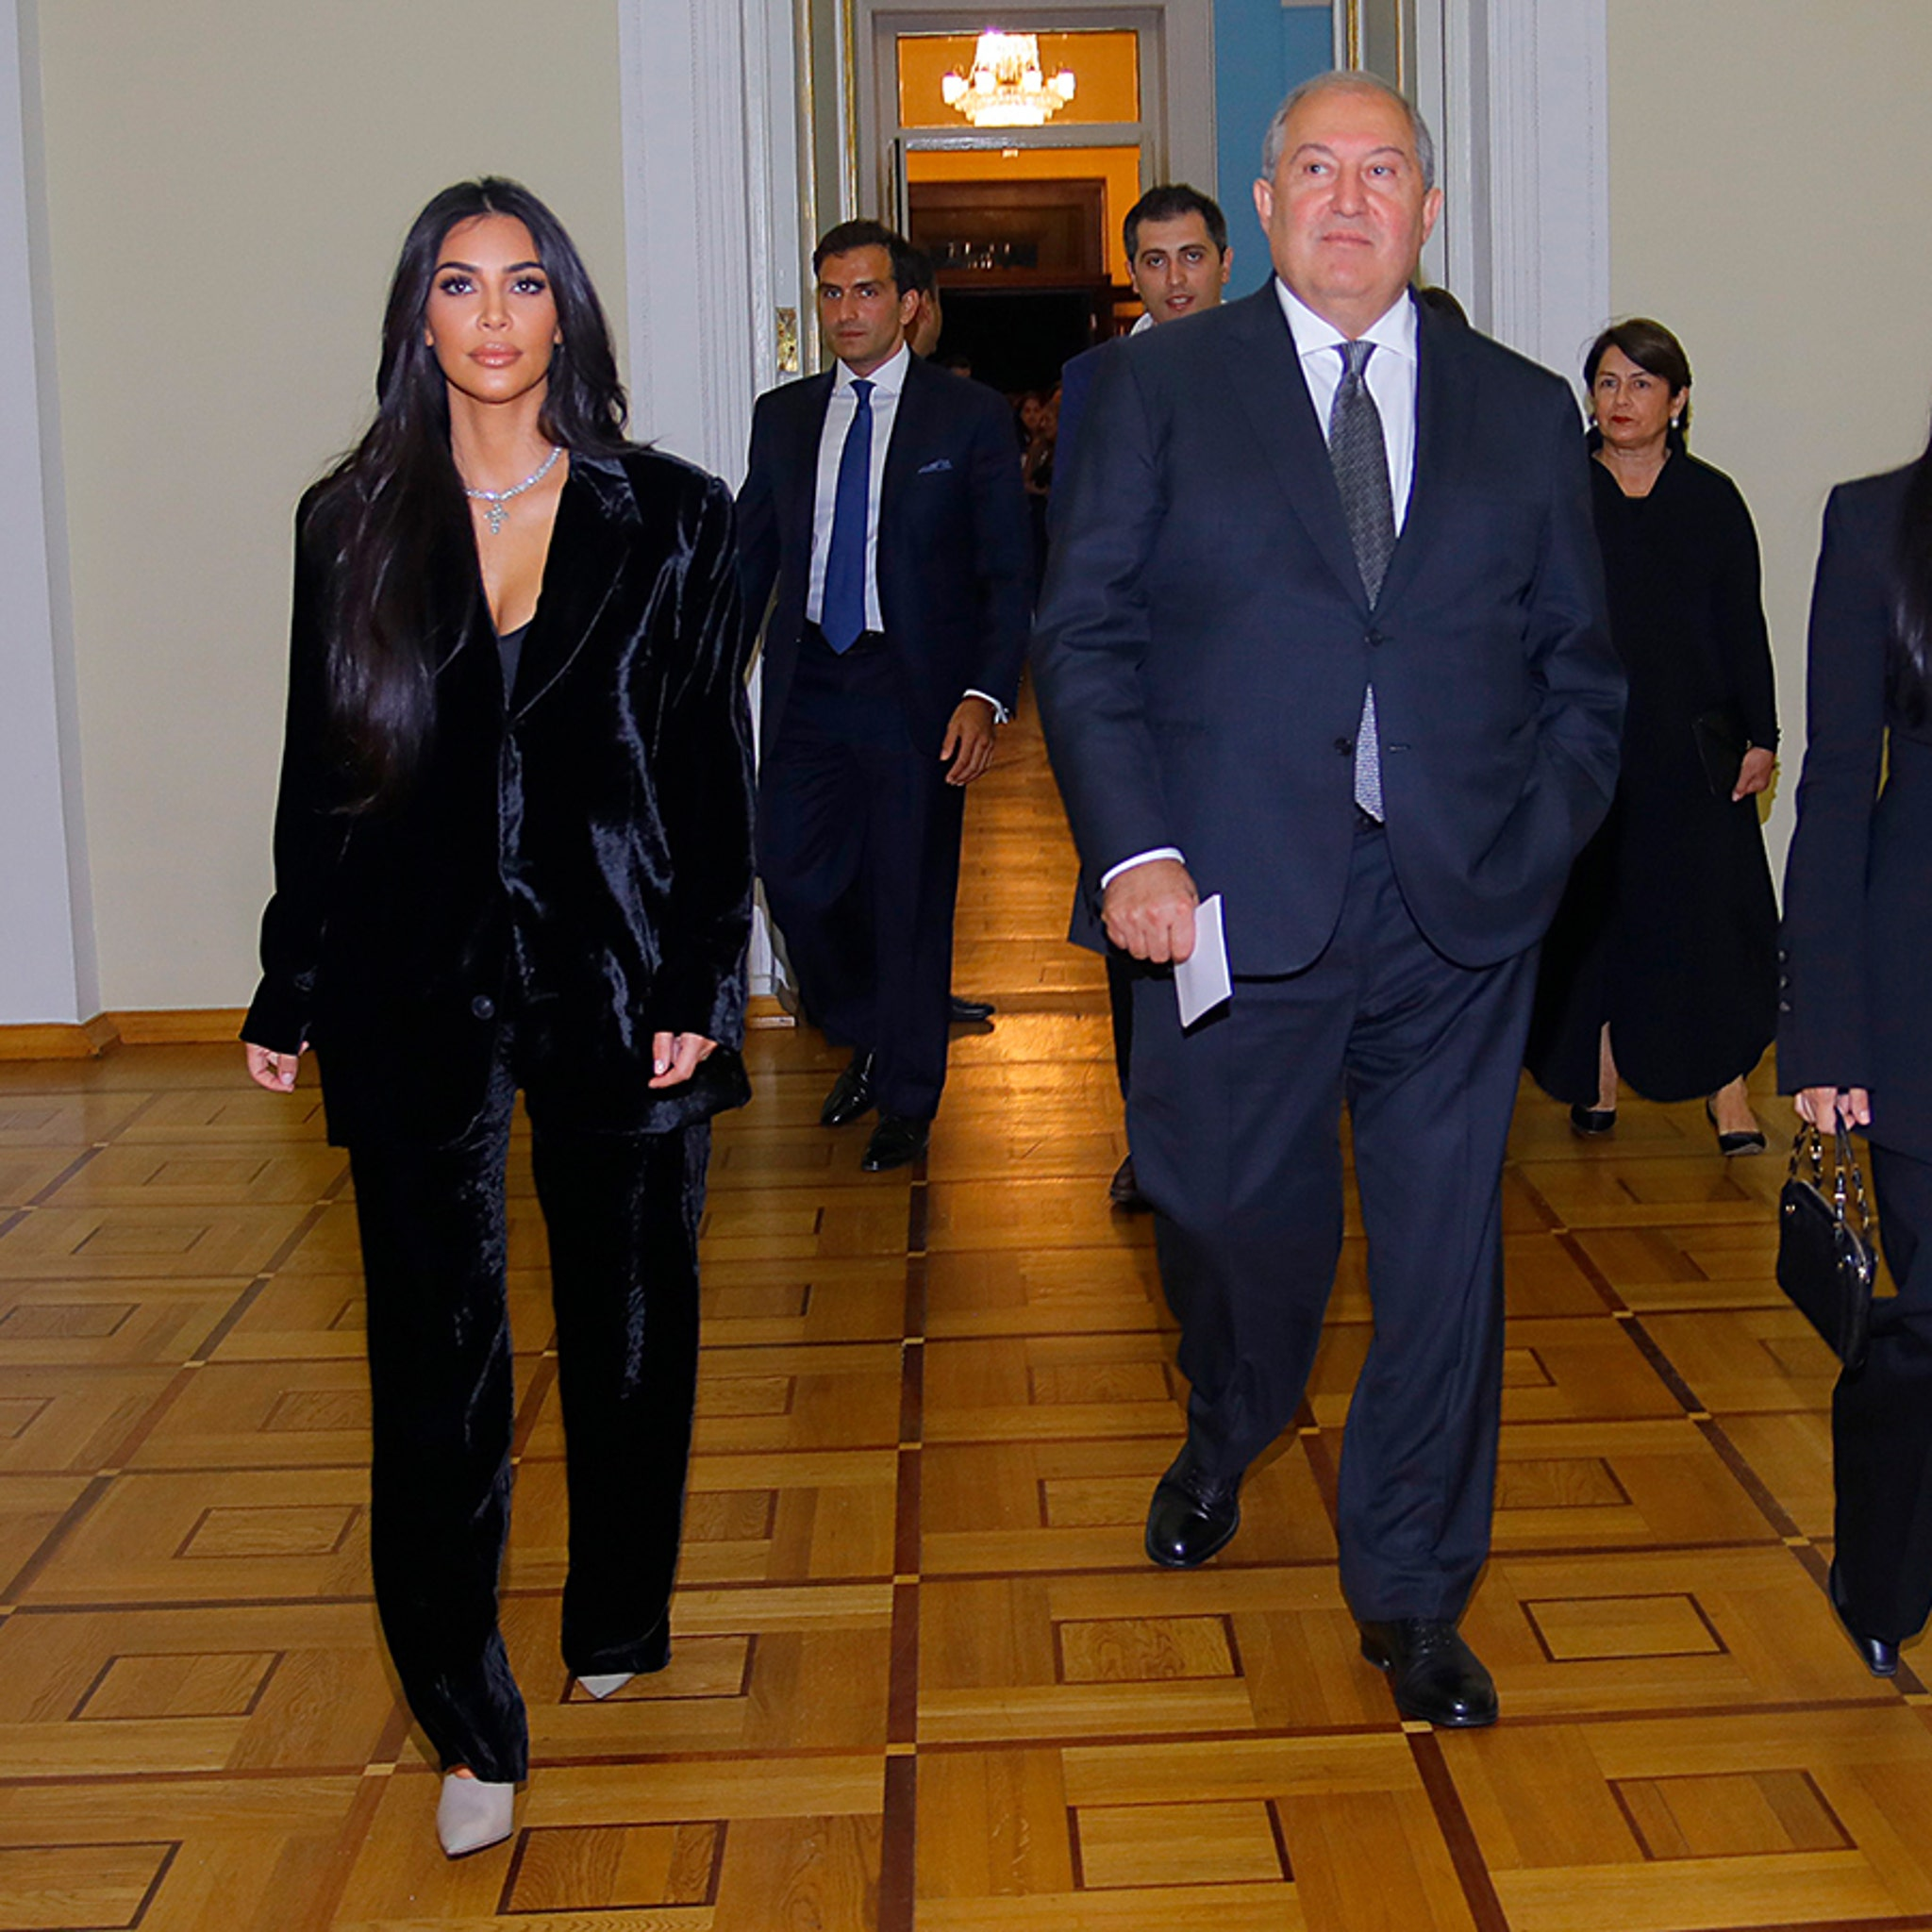 Kim and Kourtney Kardashian Break Bread with President of Armenia